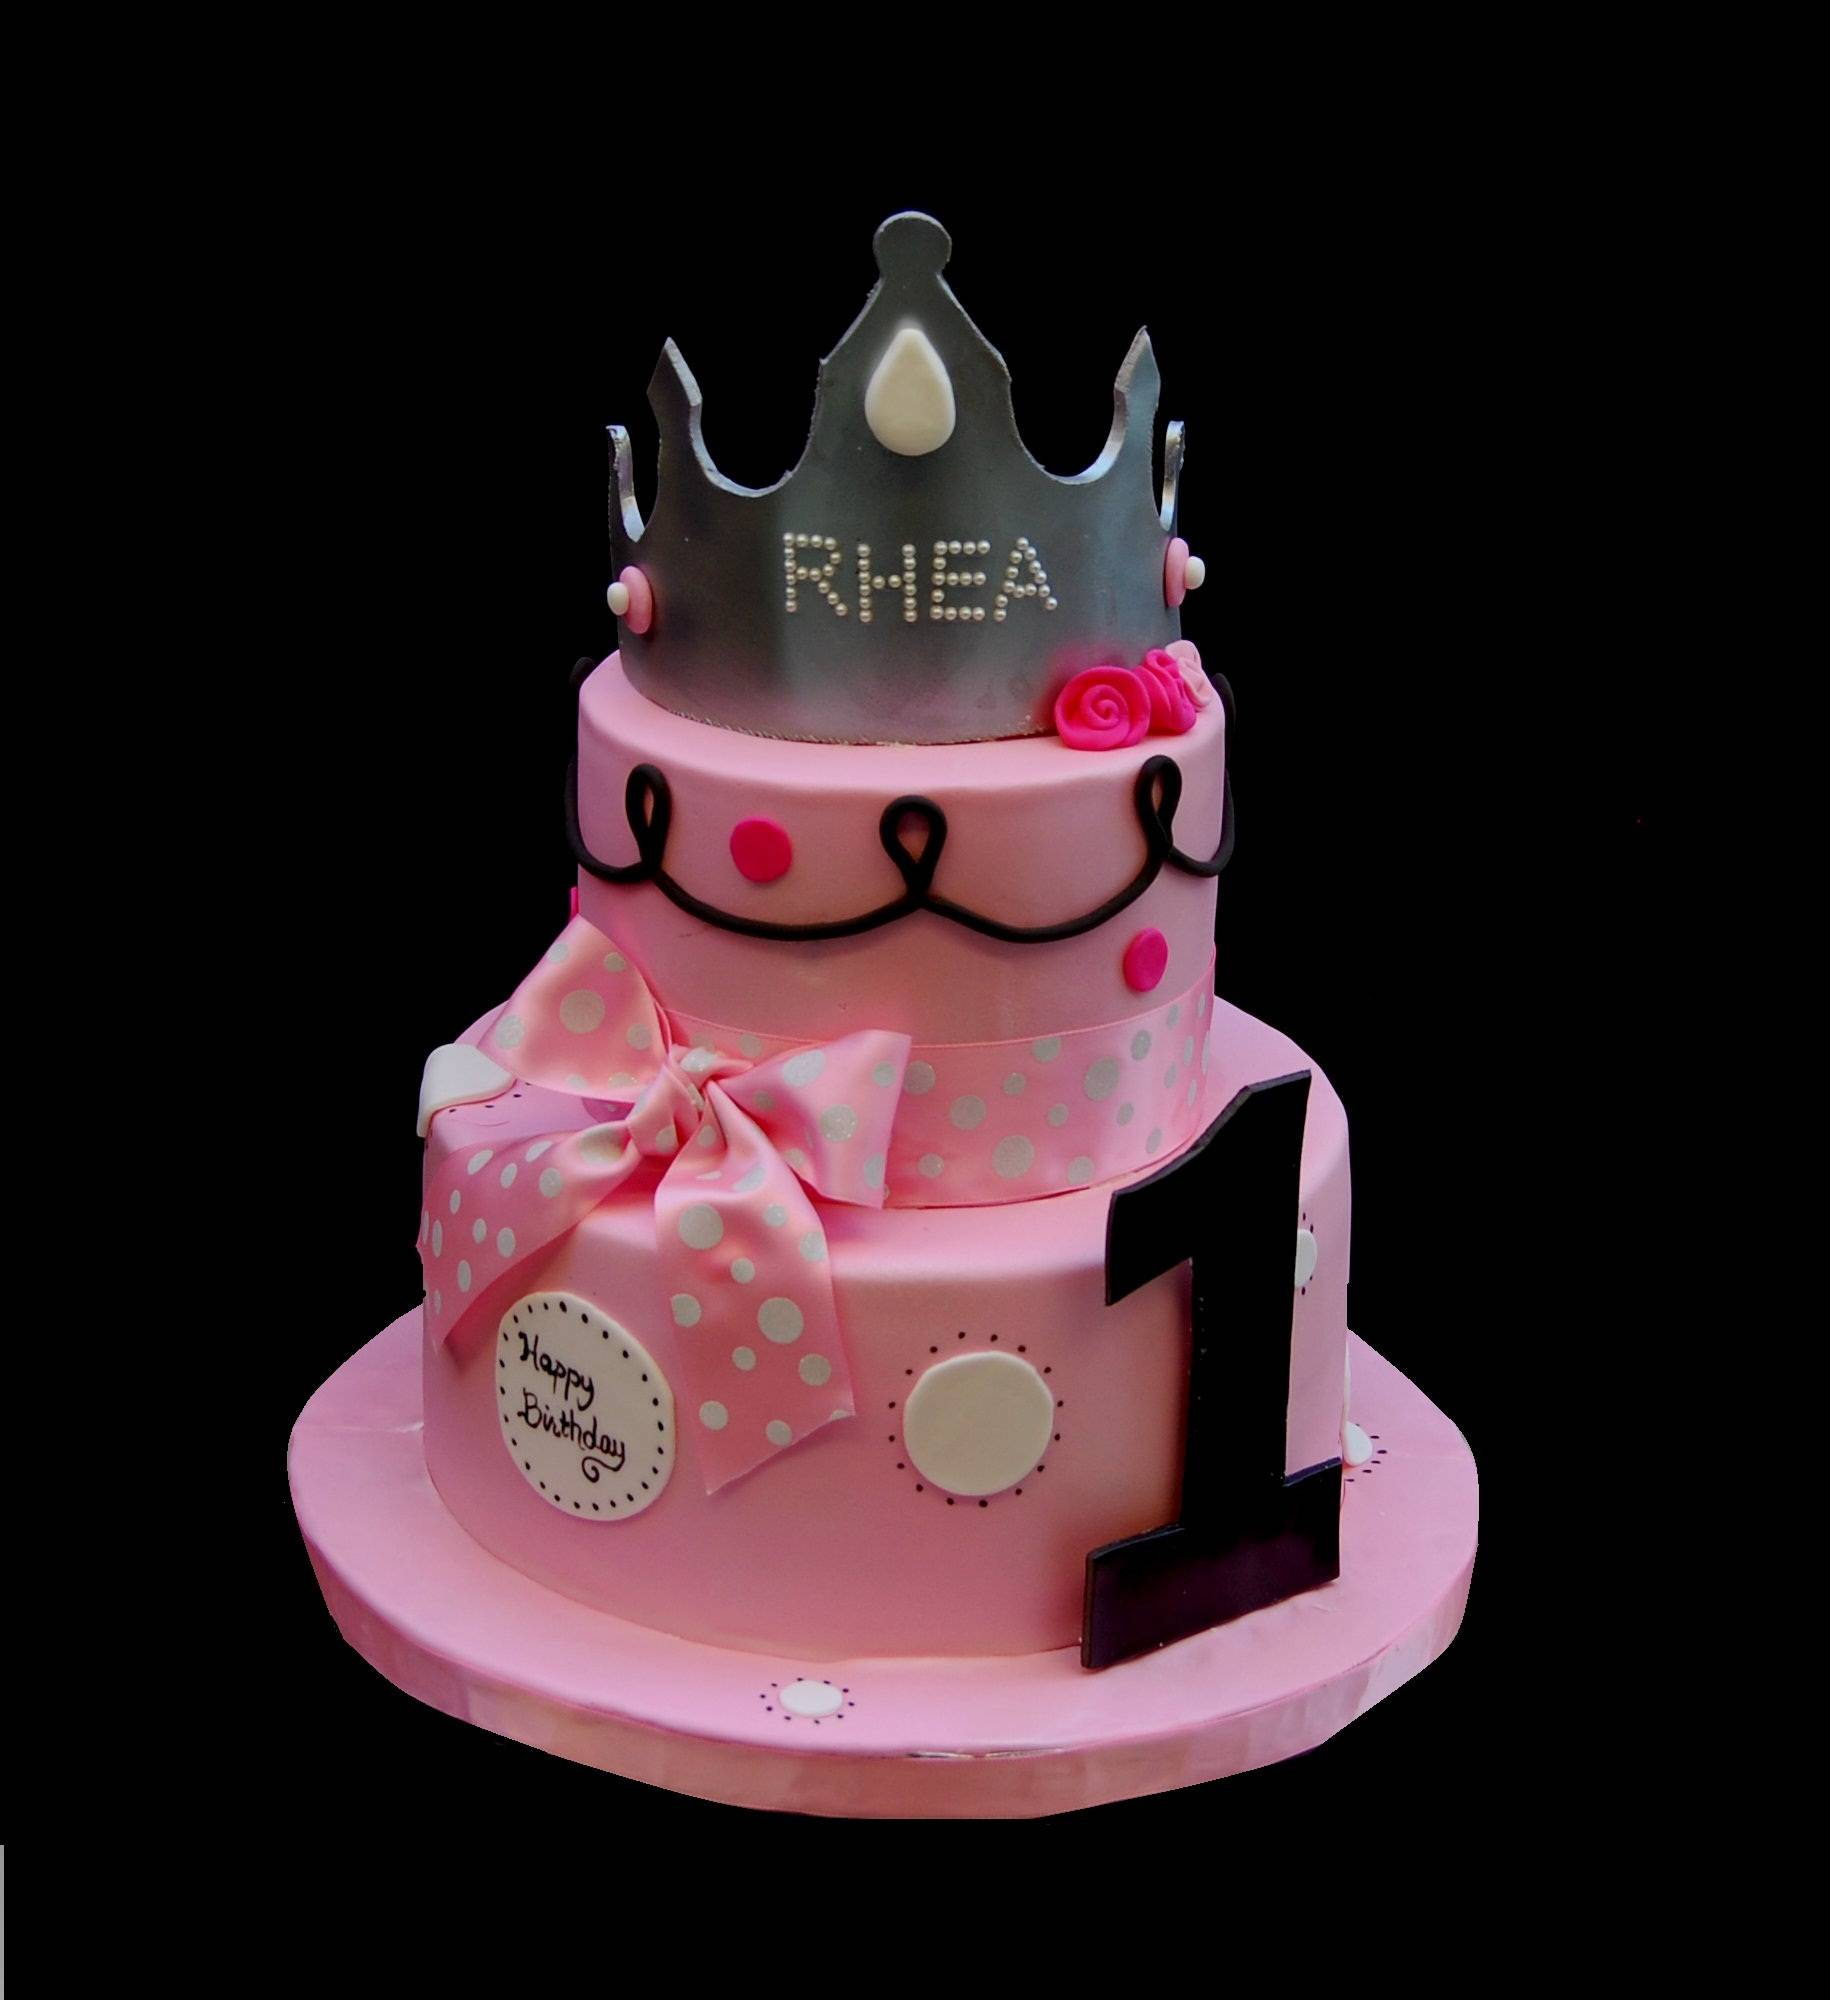 A small birthday cake for a one year old princess